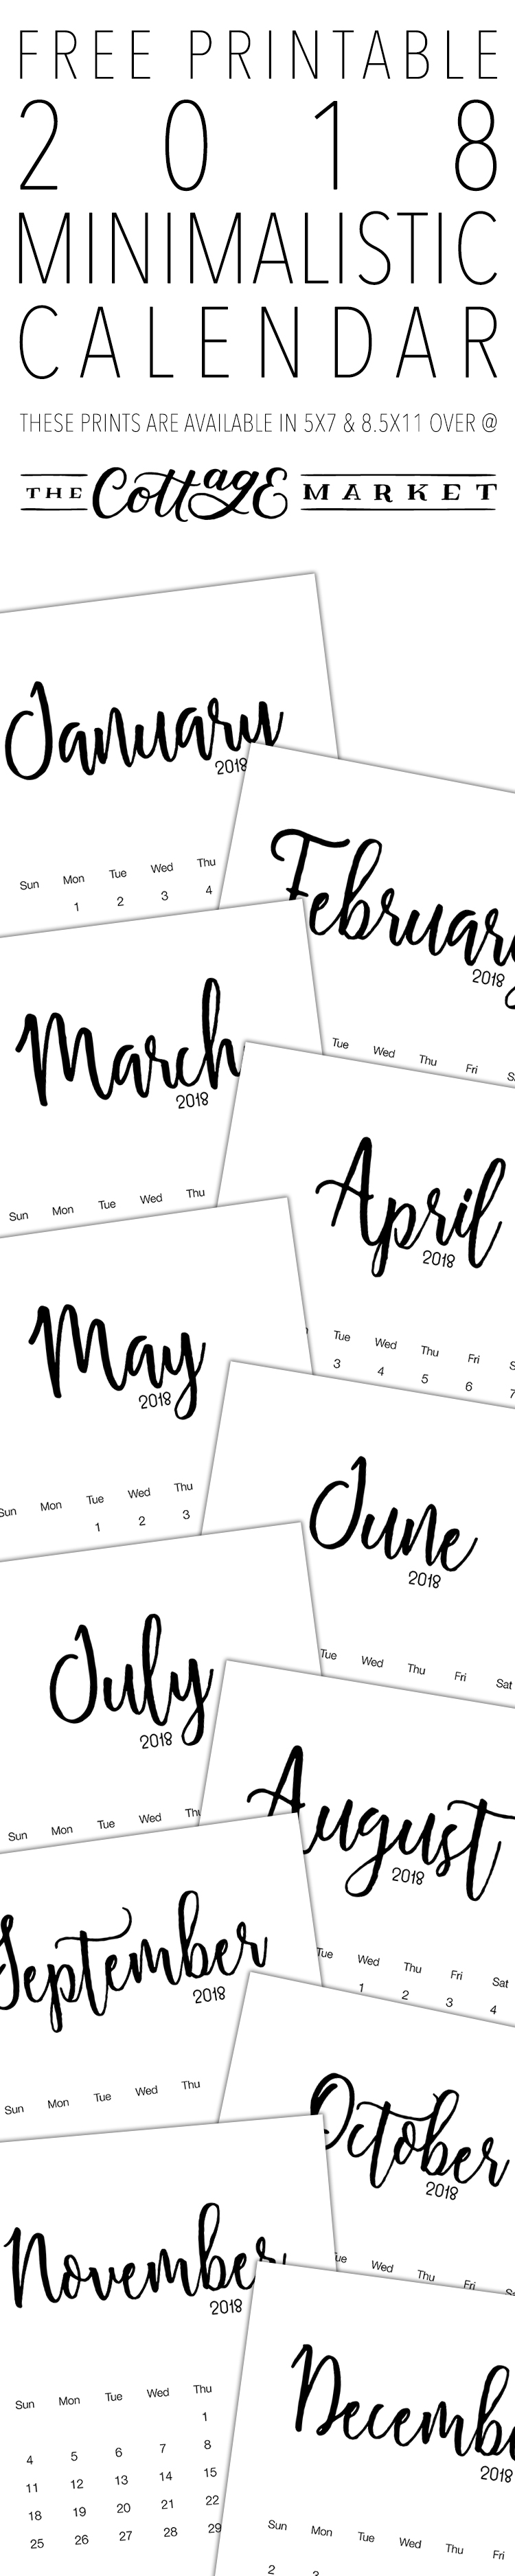 FREE Printable Minimalistic Design Calendar for 2018 from The Cottage Market